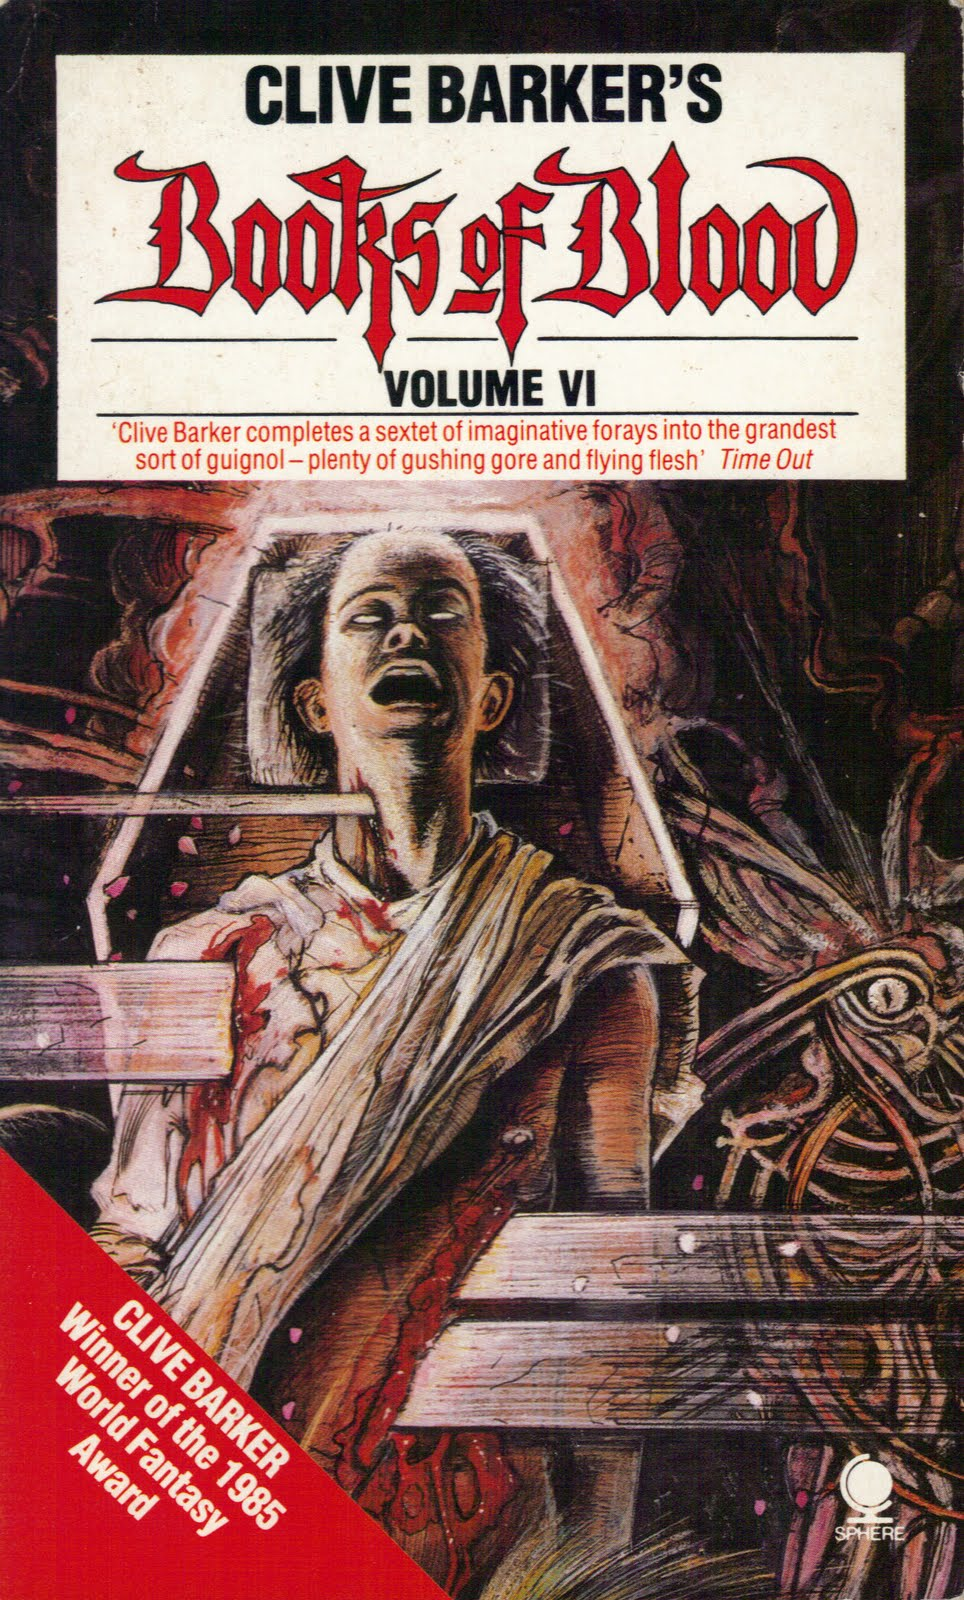 too much horror fiction books of blood vol 6 by clive